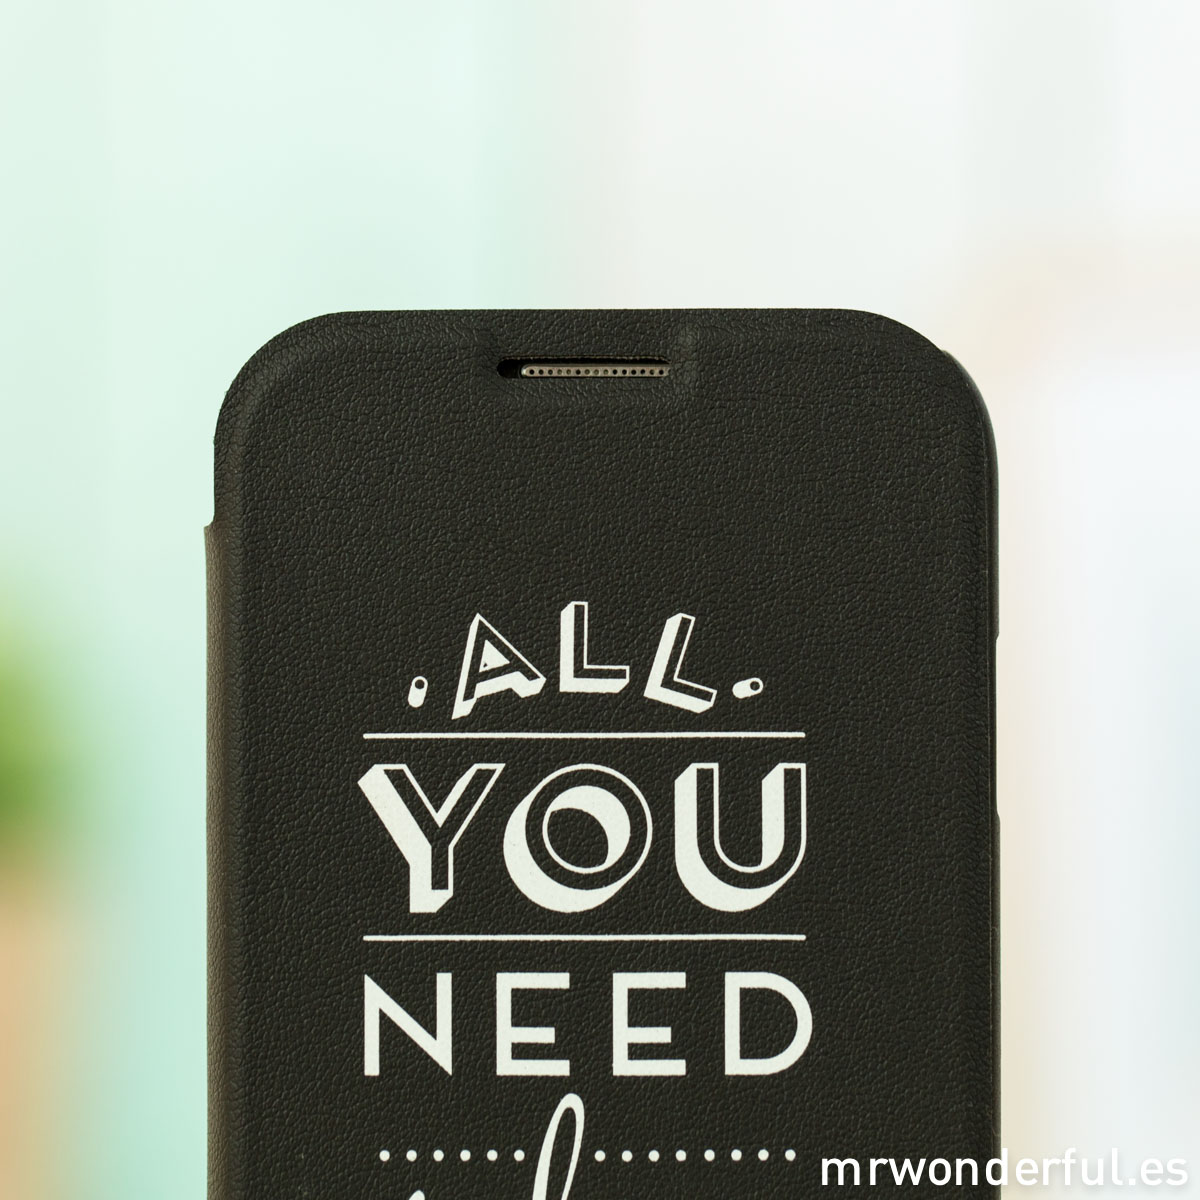 mrwonderful_MRFOL001_funda-negra-samsung-galaxy-S4_all-you-need-love-wifi-12